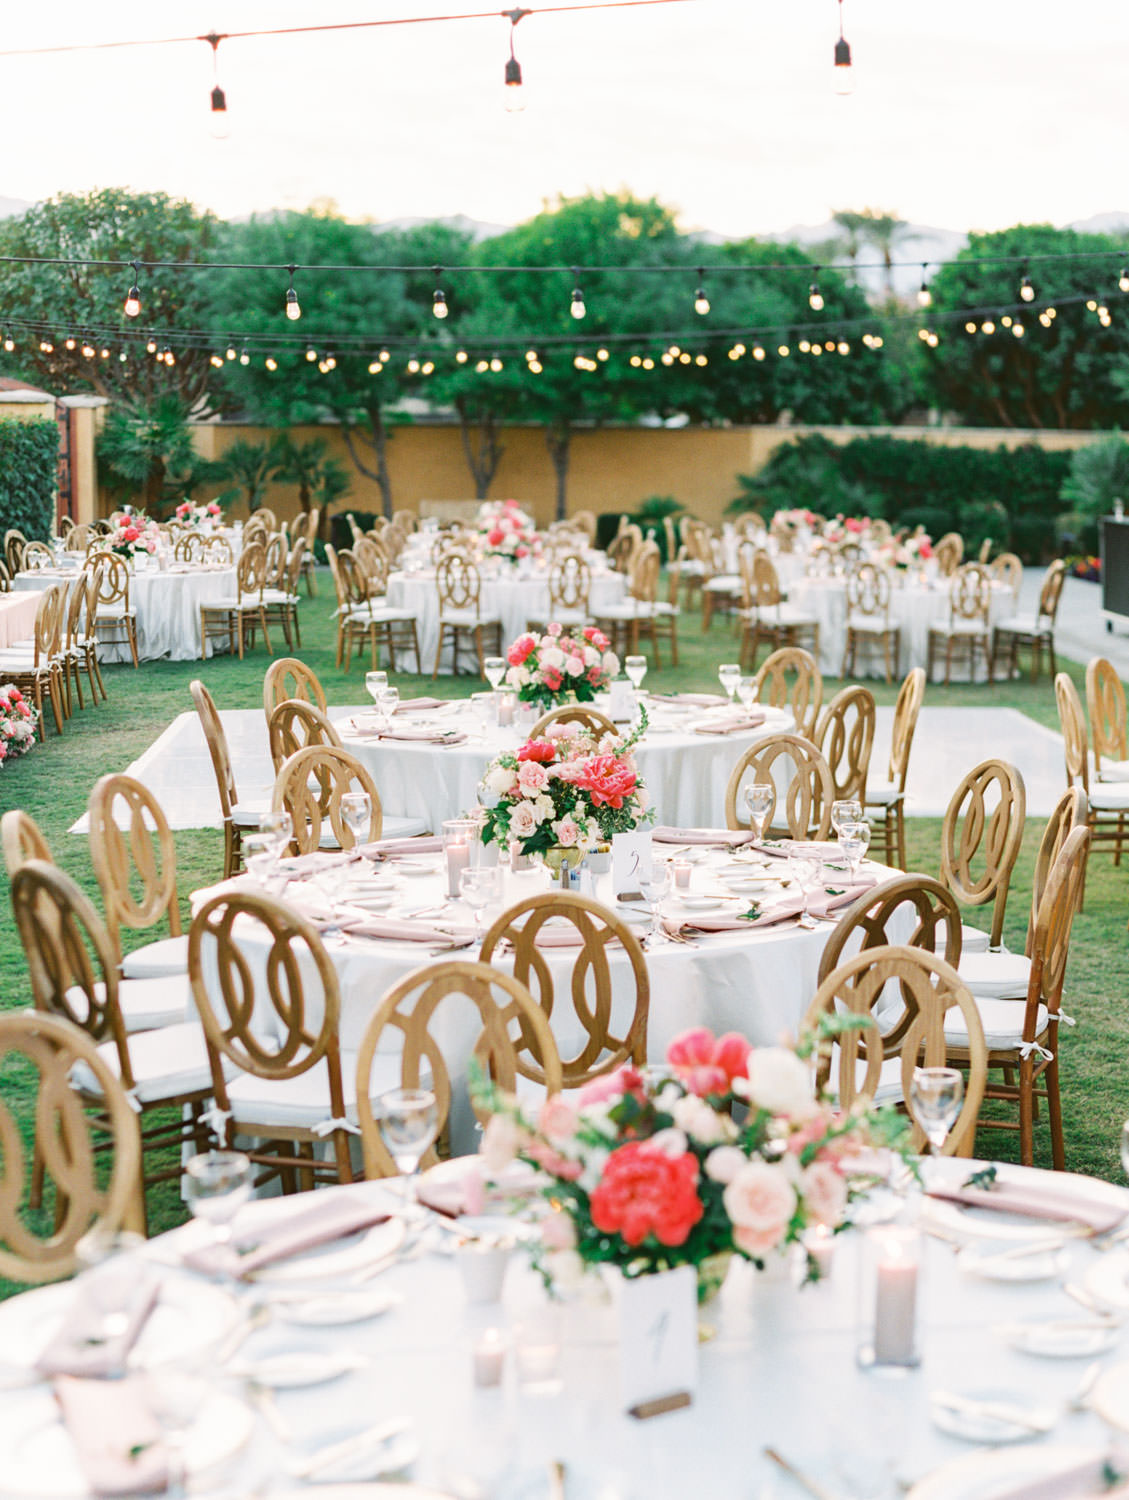 Above view of the entire wedding reception with round tables and oak Orion chairs. White dance floor and market lights. Pink and ivory bold centerpieces with peonies and roses. Miramonte Resort reception on the Mesquite Lawn. Film photography by Cavin Elizabeth.